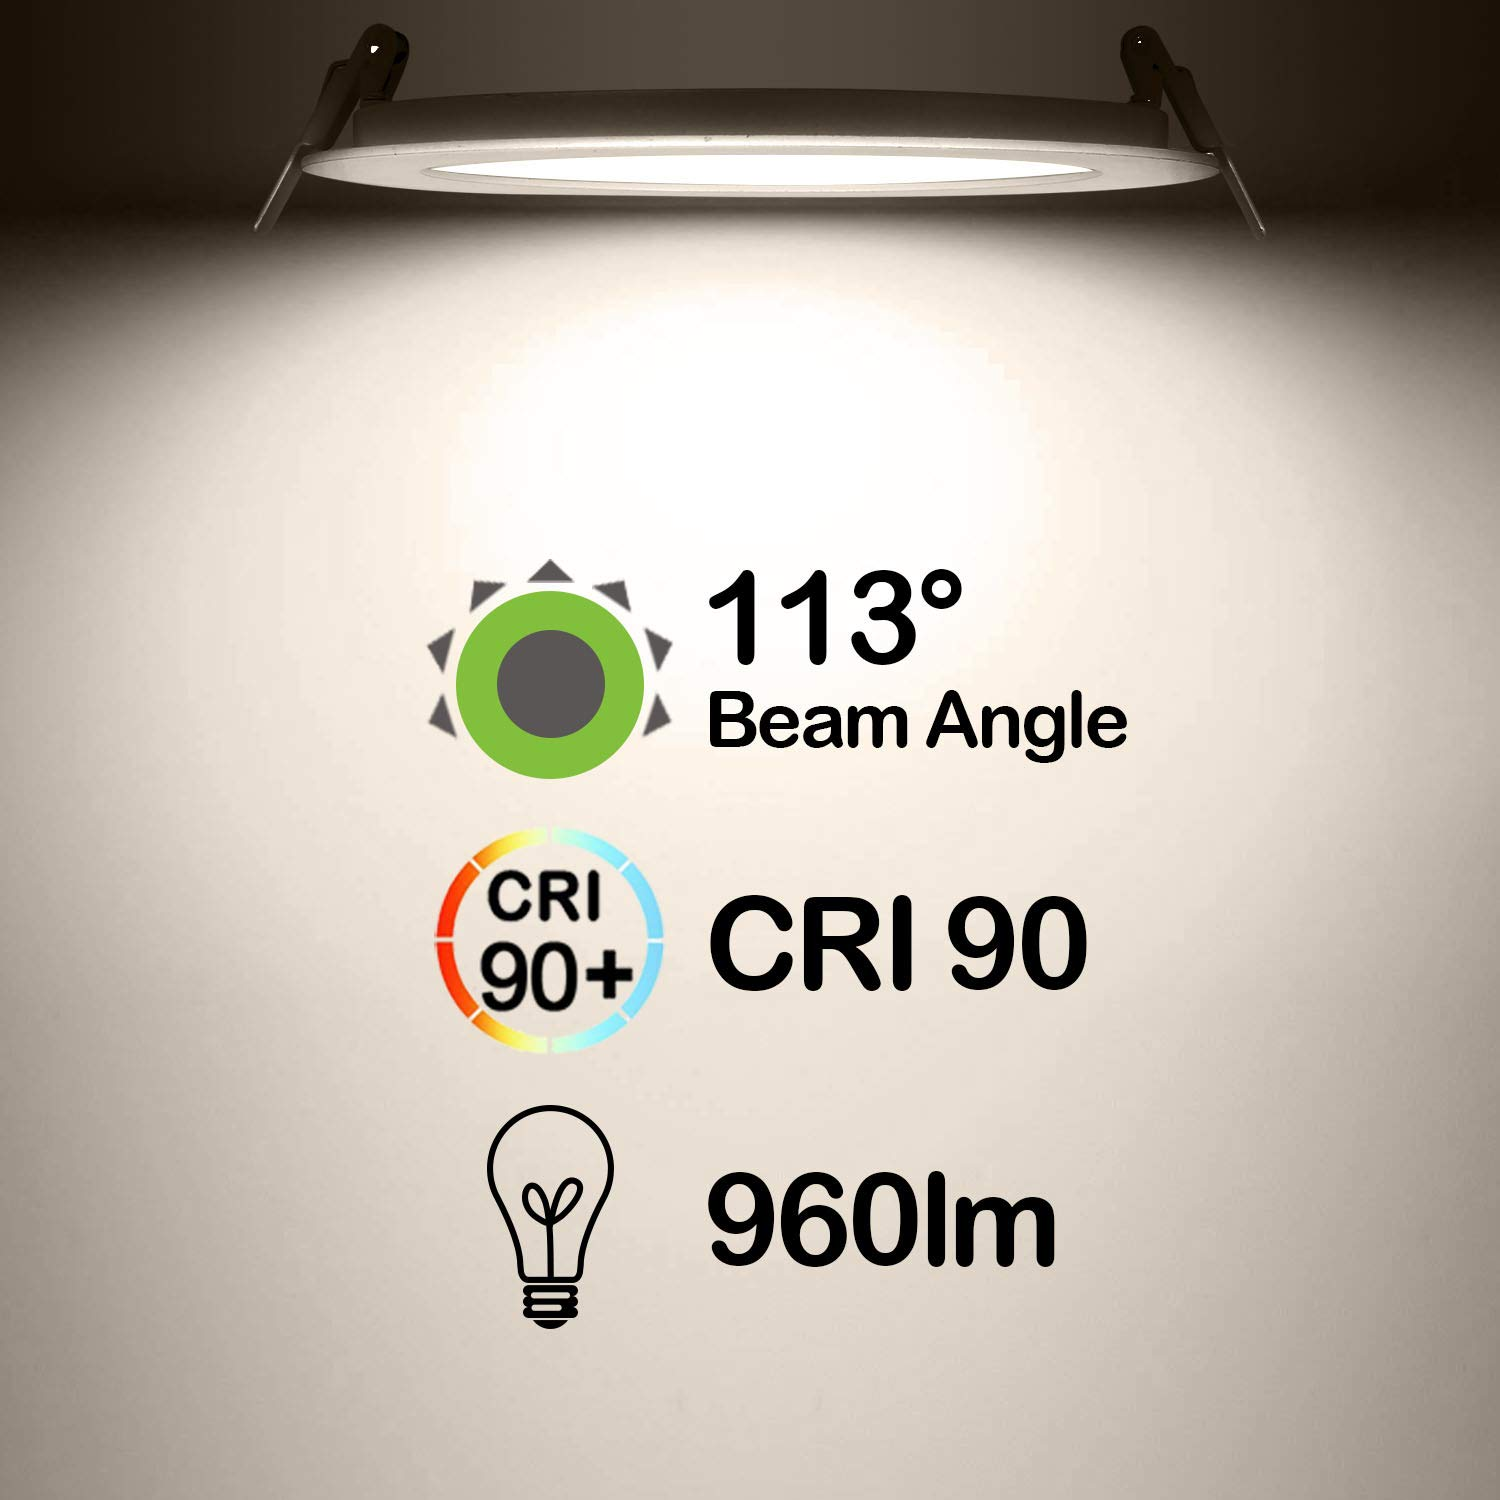 Hykolity 15w 6 Inch Led Slim Recessed Ceiling Light 960lm Cri90 Wiring Diagram Of Triac Dimming Downlight Connecting Over 1 4000k Neutral White Low Profile With Juction Box Dimmable Etl Energy Star